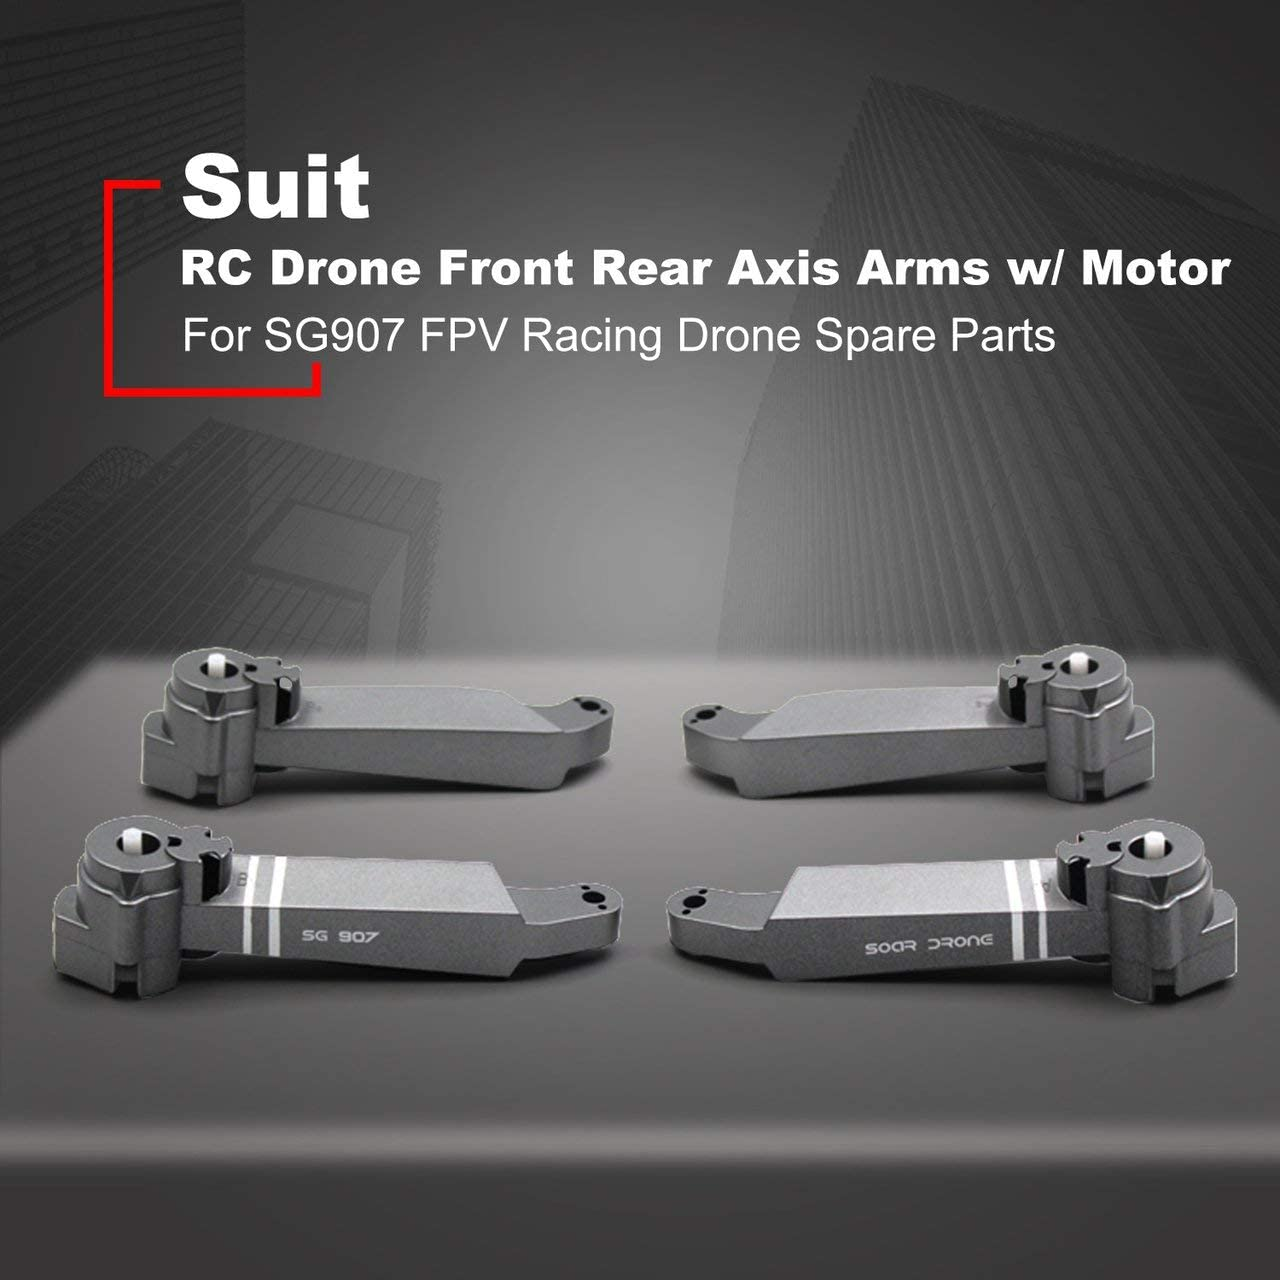 Black Jasnyfall RC Drone Front Rear Axis Arms w// Motor For SG907 FPV Racing Drone Frame Replacement Spare Parts Accessory